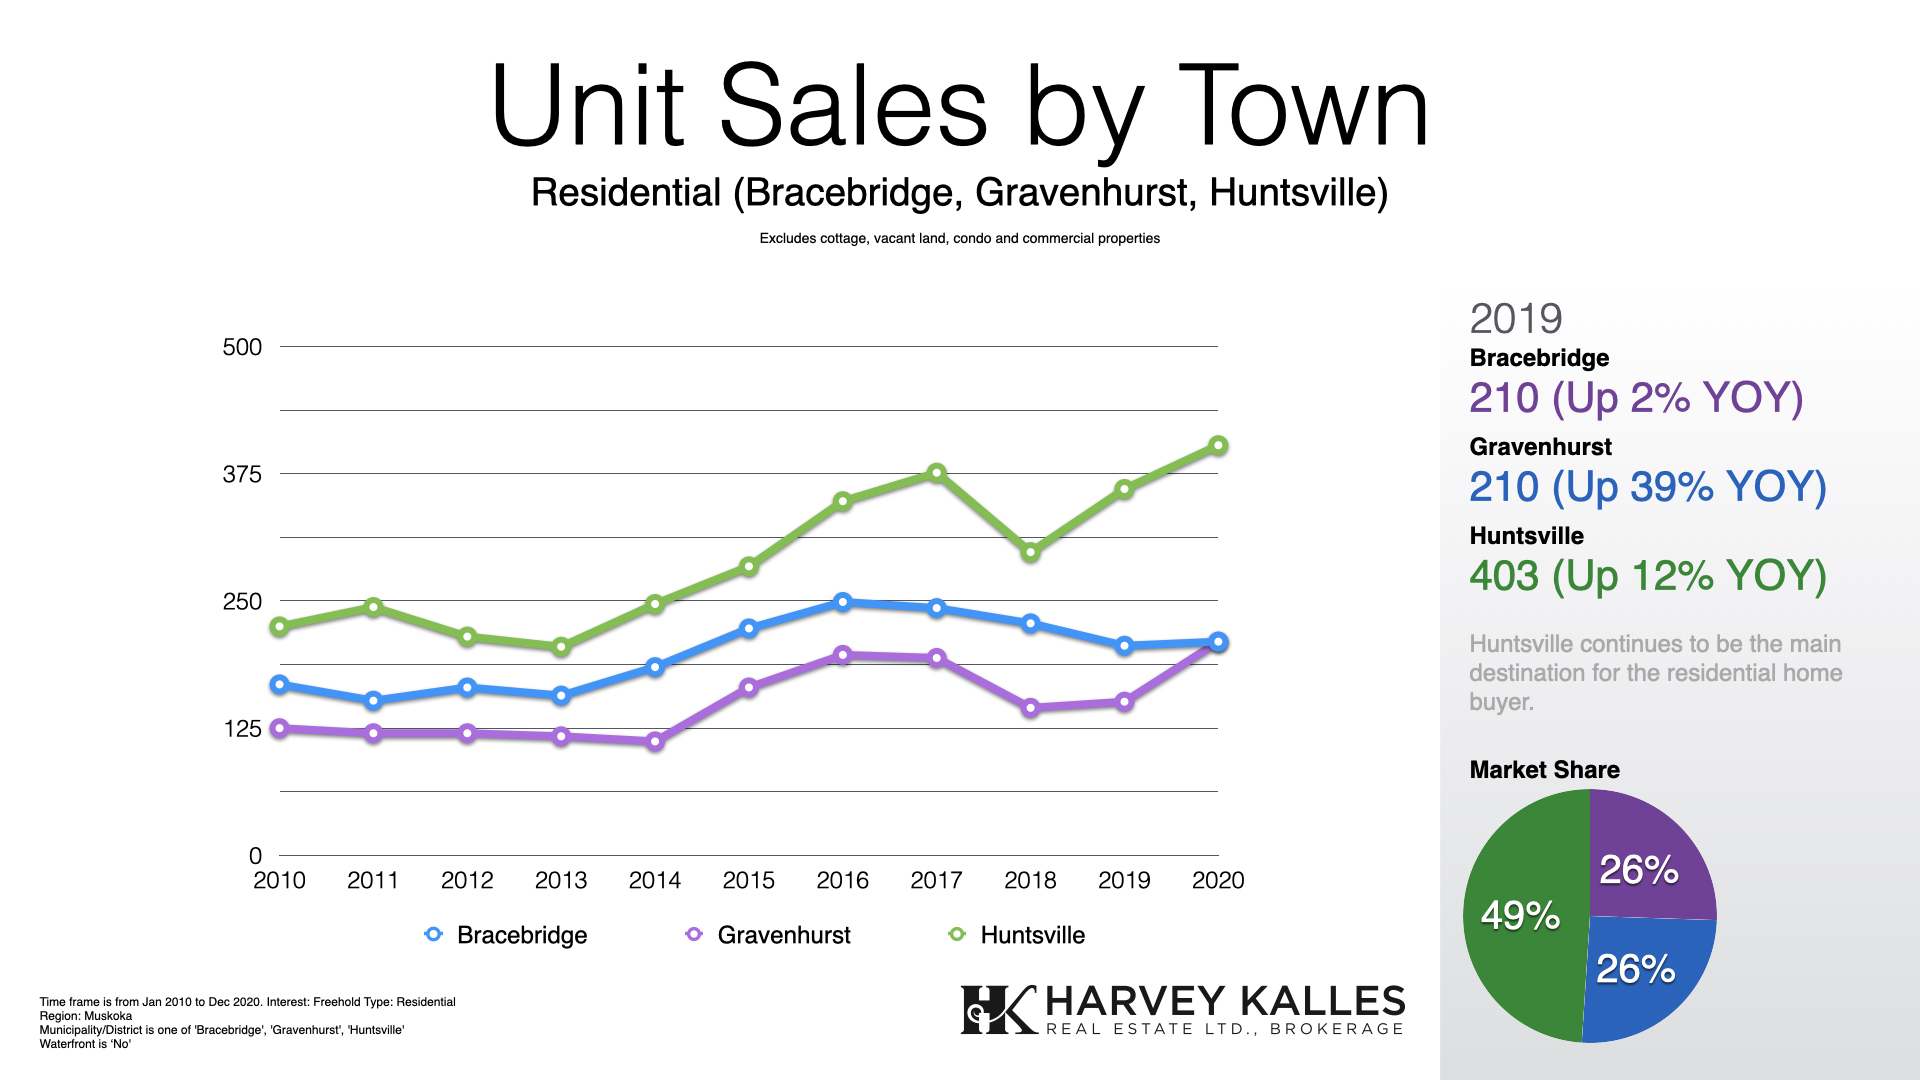 Muskoka Residential Real Estate Units Sold By Town